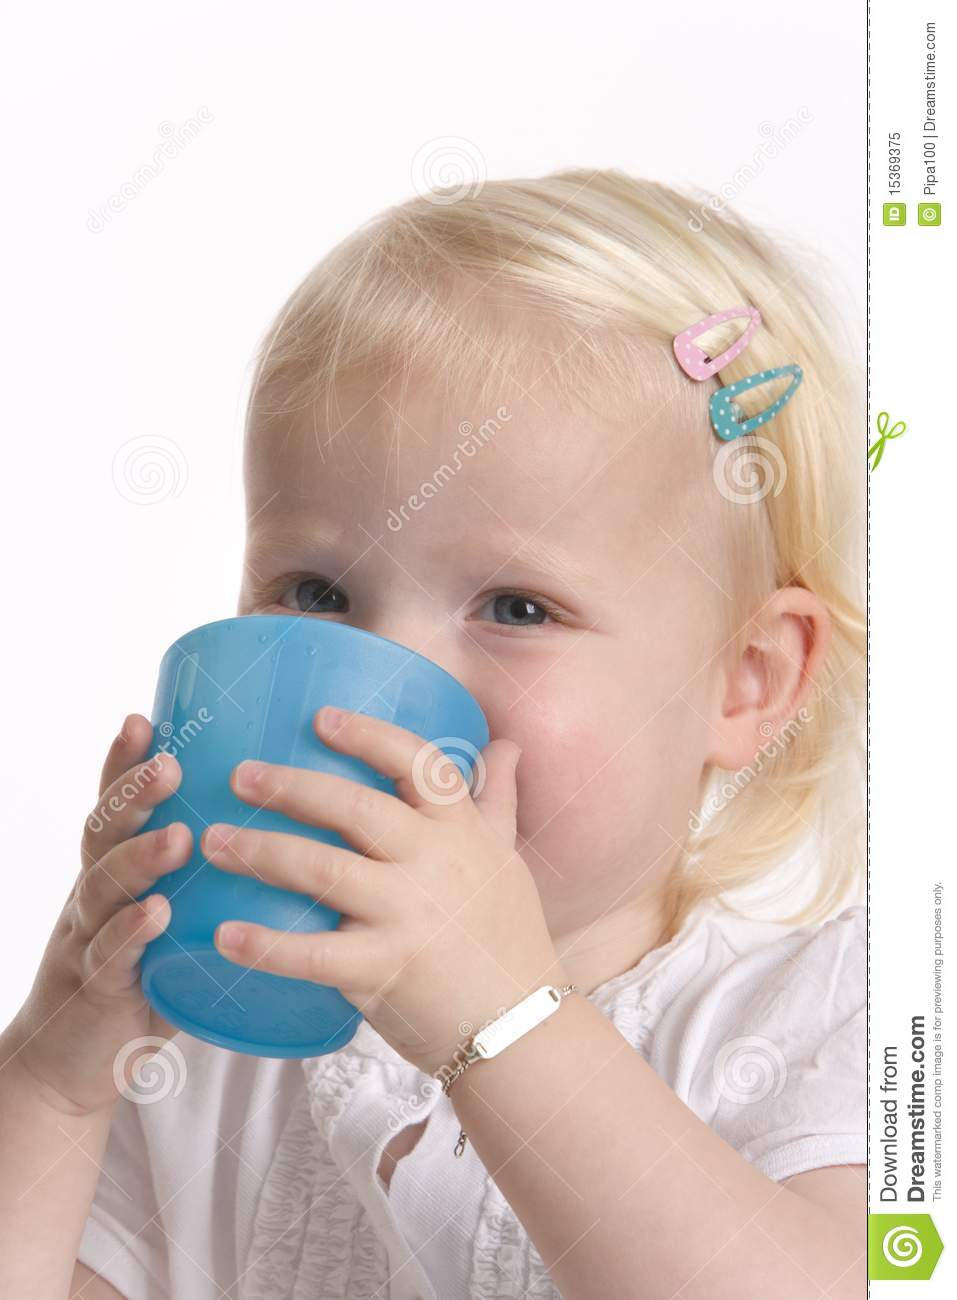 Toddler Girl Drinking From Cup Royalty Free Stock Photo